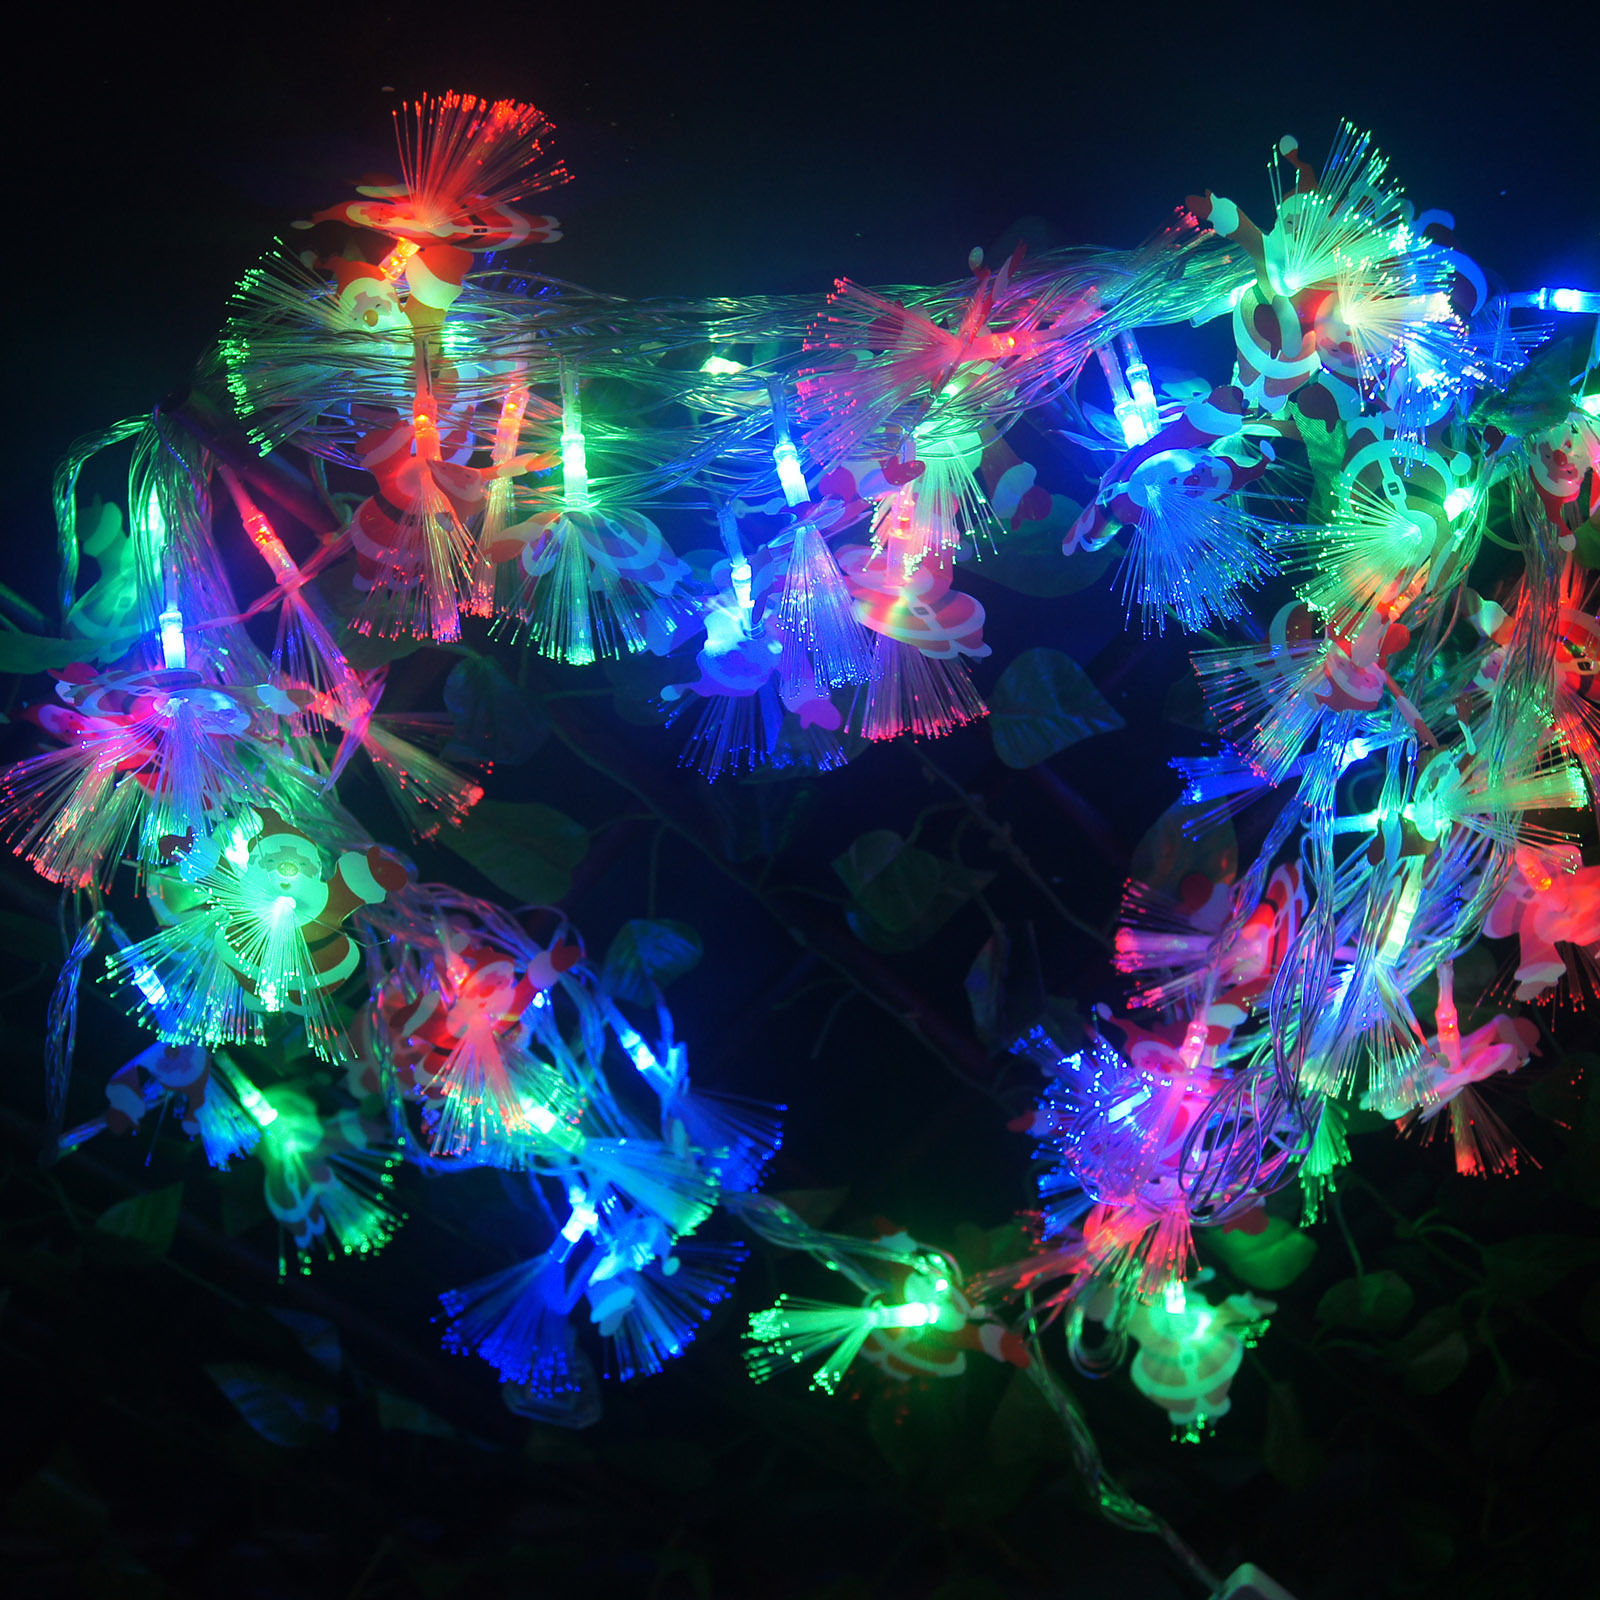 NEW Santa Claus Shaped Fiber Optic Fairy Light Wedding Party Decor US SHIPPING (Muti-color)